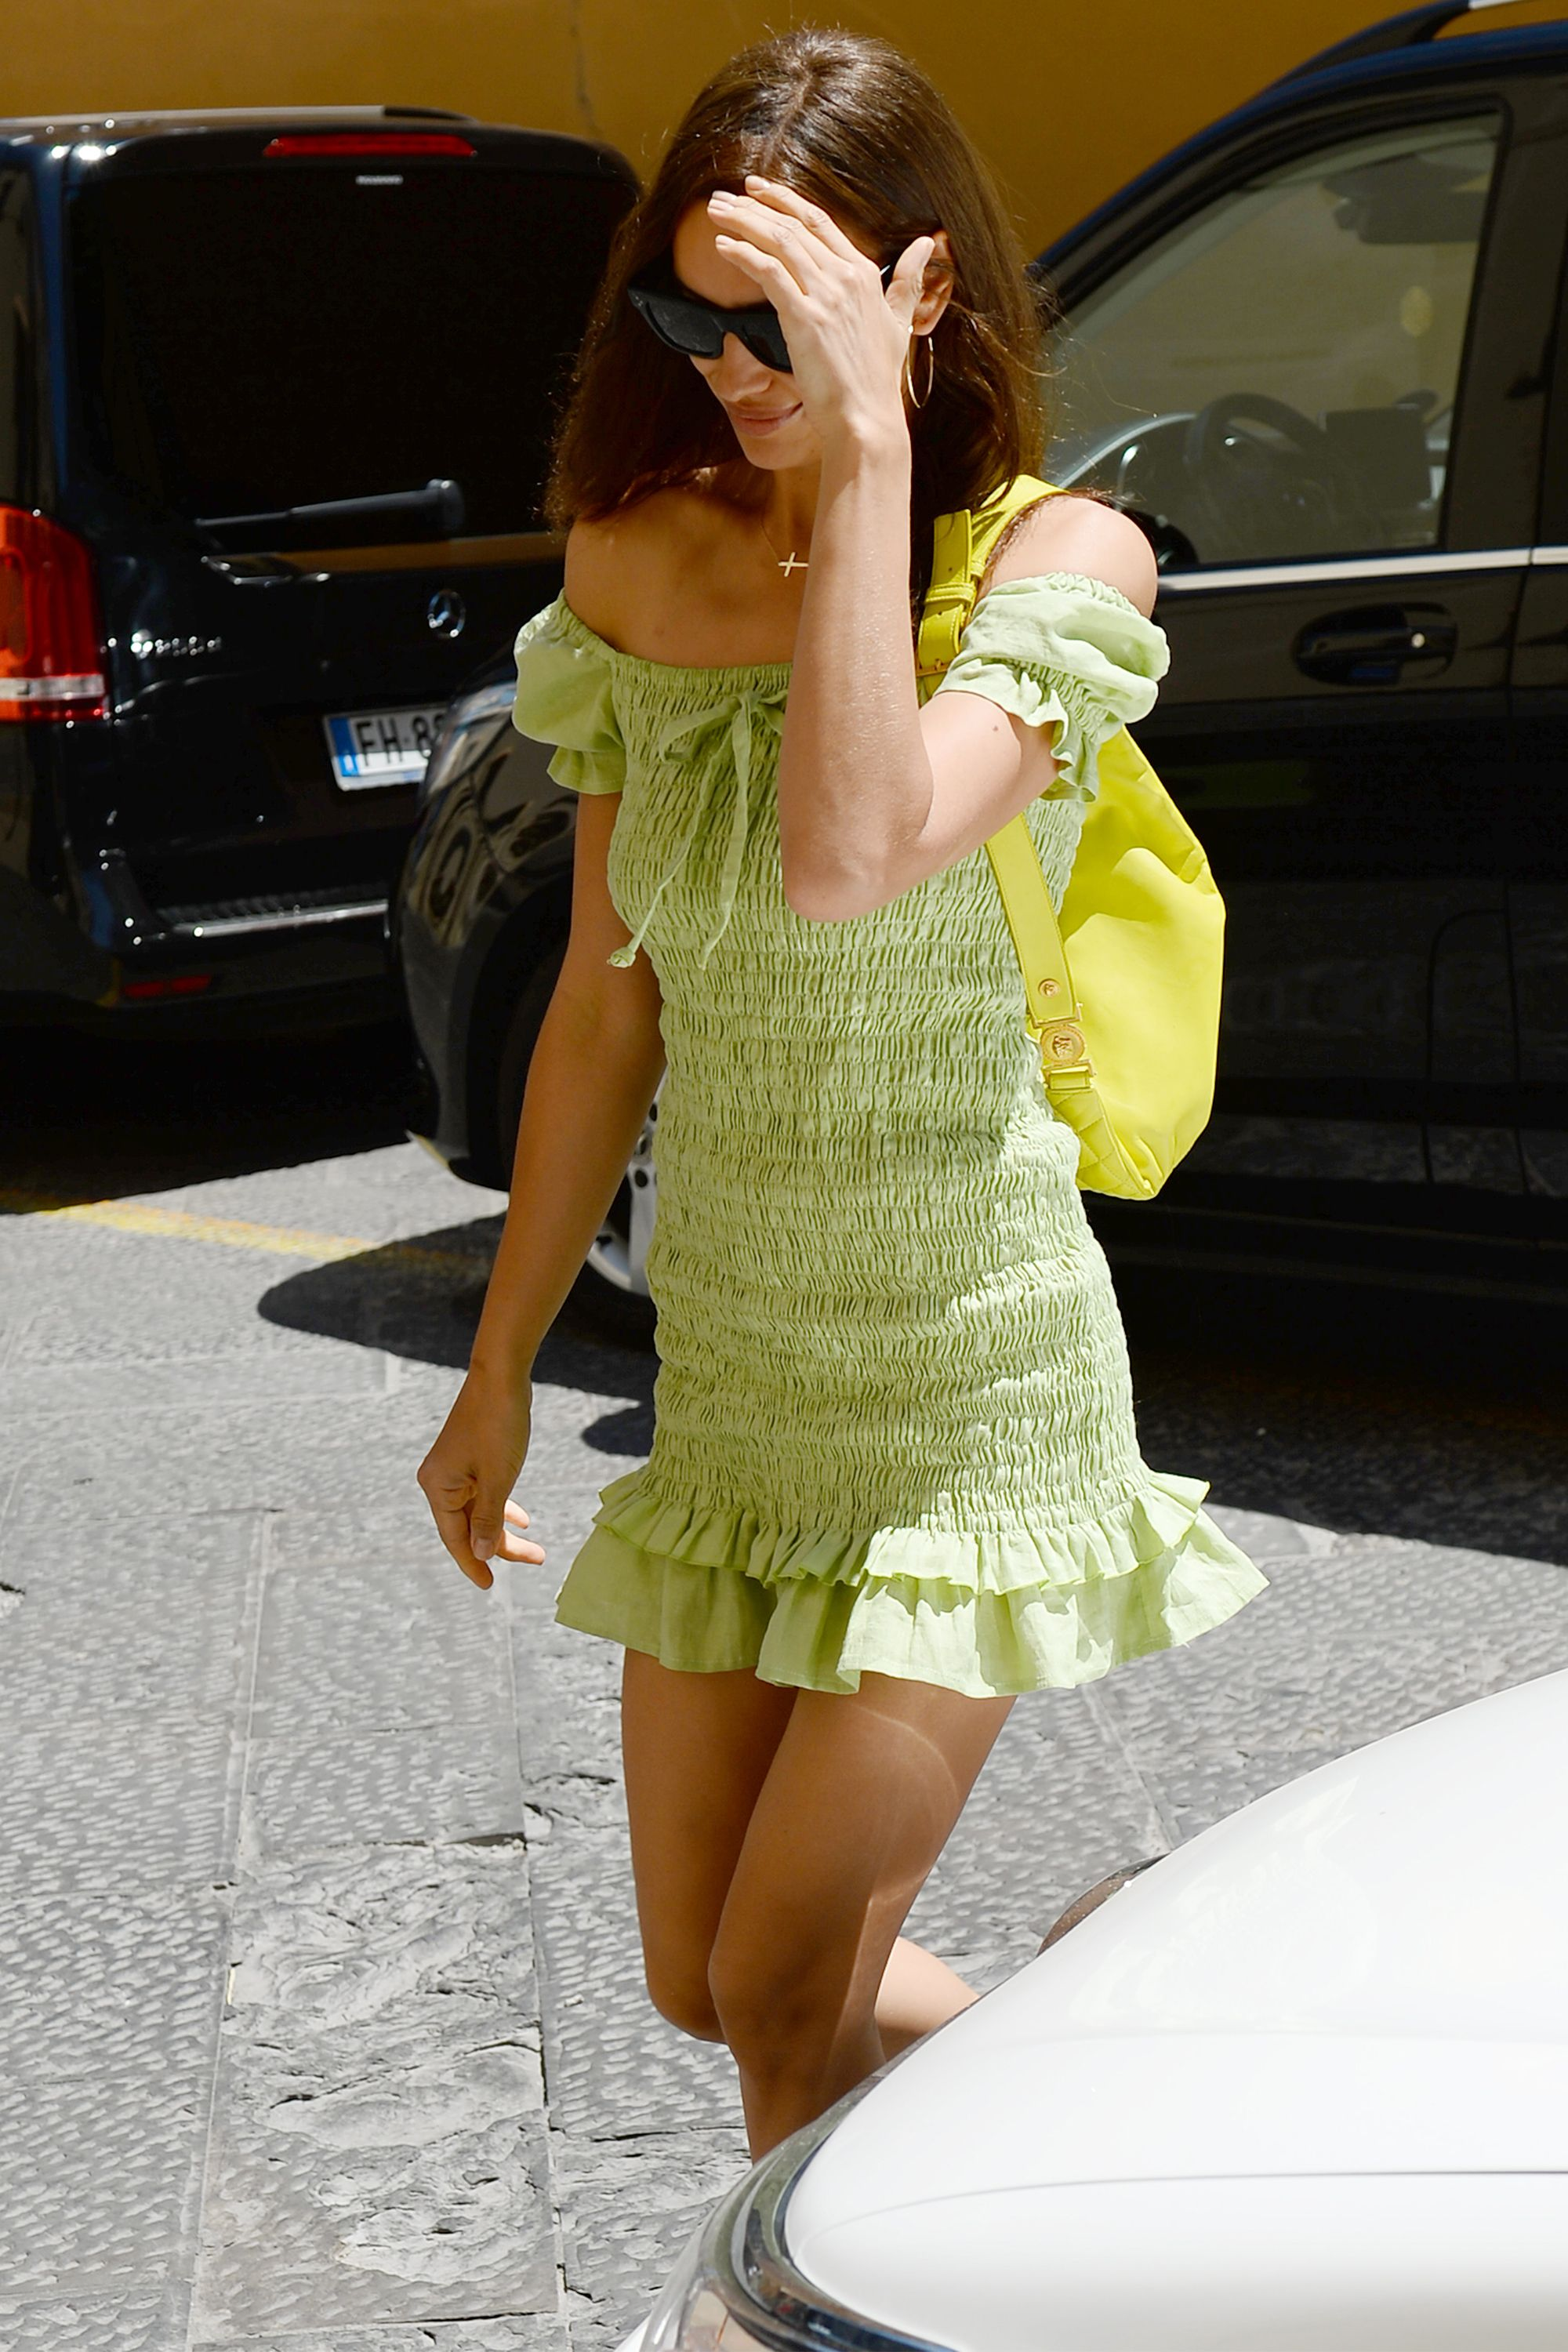 Irina Shayk Steps Out in the Dress (and the Color) of Summer